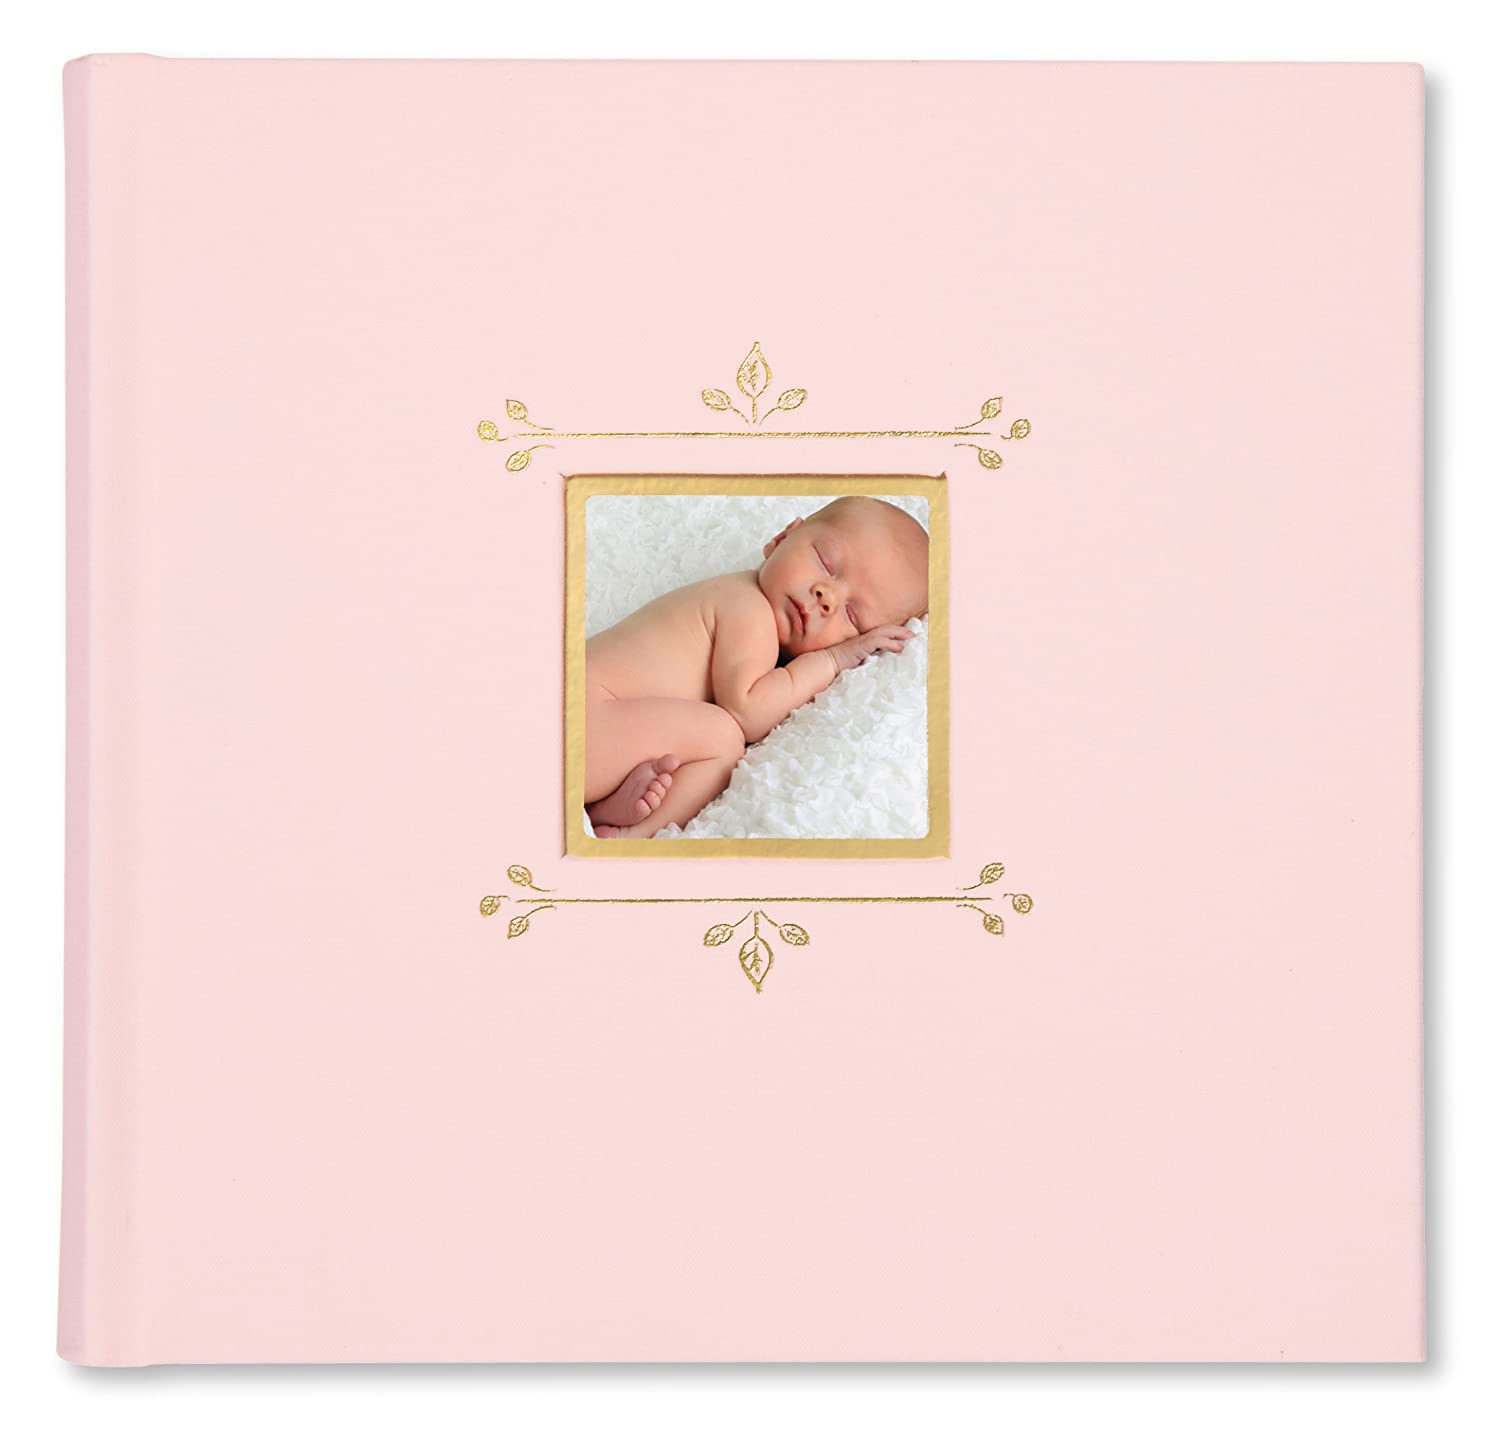 C.R. Gibson Pink Cloth Slim Bound Photo Journal Album for Baby and Newborn Girls, 9' W x 8.875' H, 80 Pages 9 W x 8.875 H C.R. Gibson - Baby BP1-18487